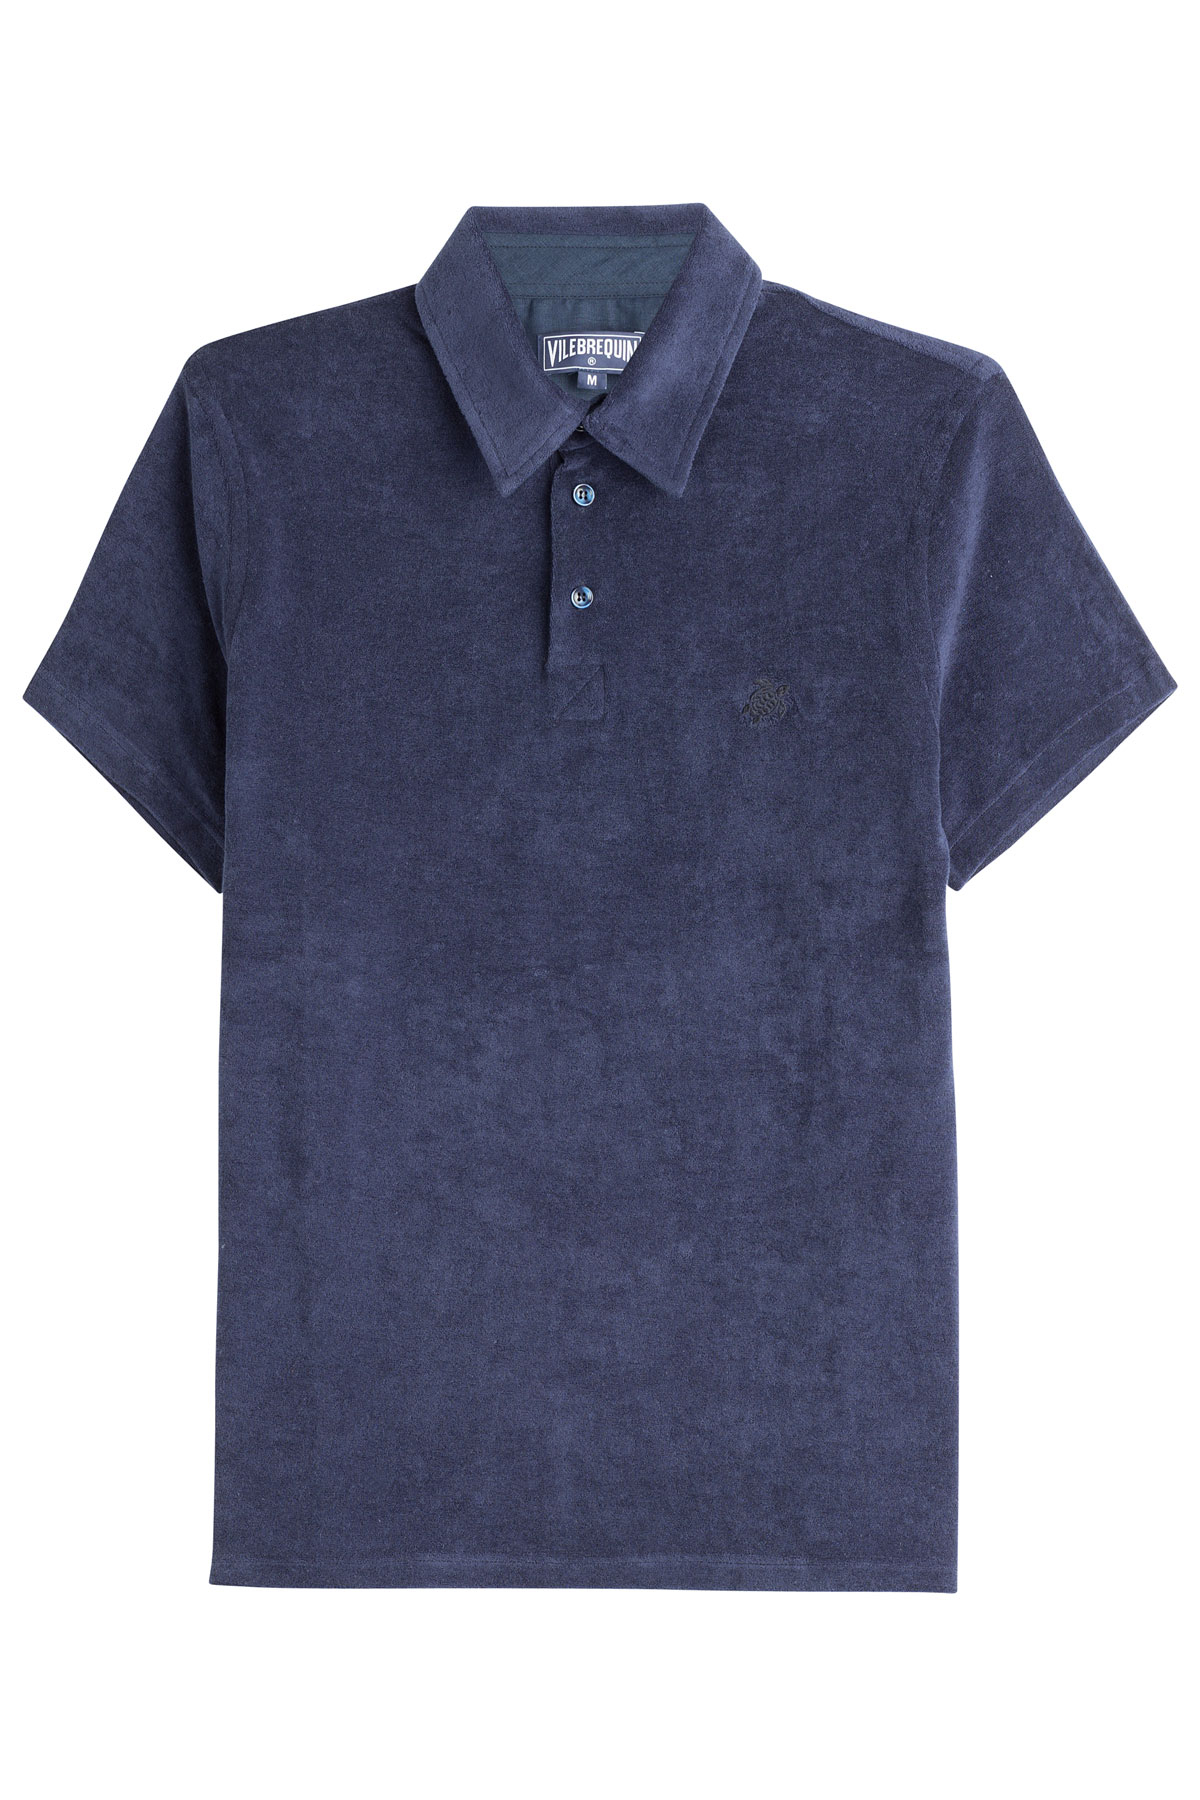 Vilebrequin terry cotton polo shirt blue in blue for men for Mens terry cloth polo shirt